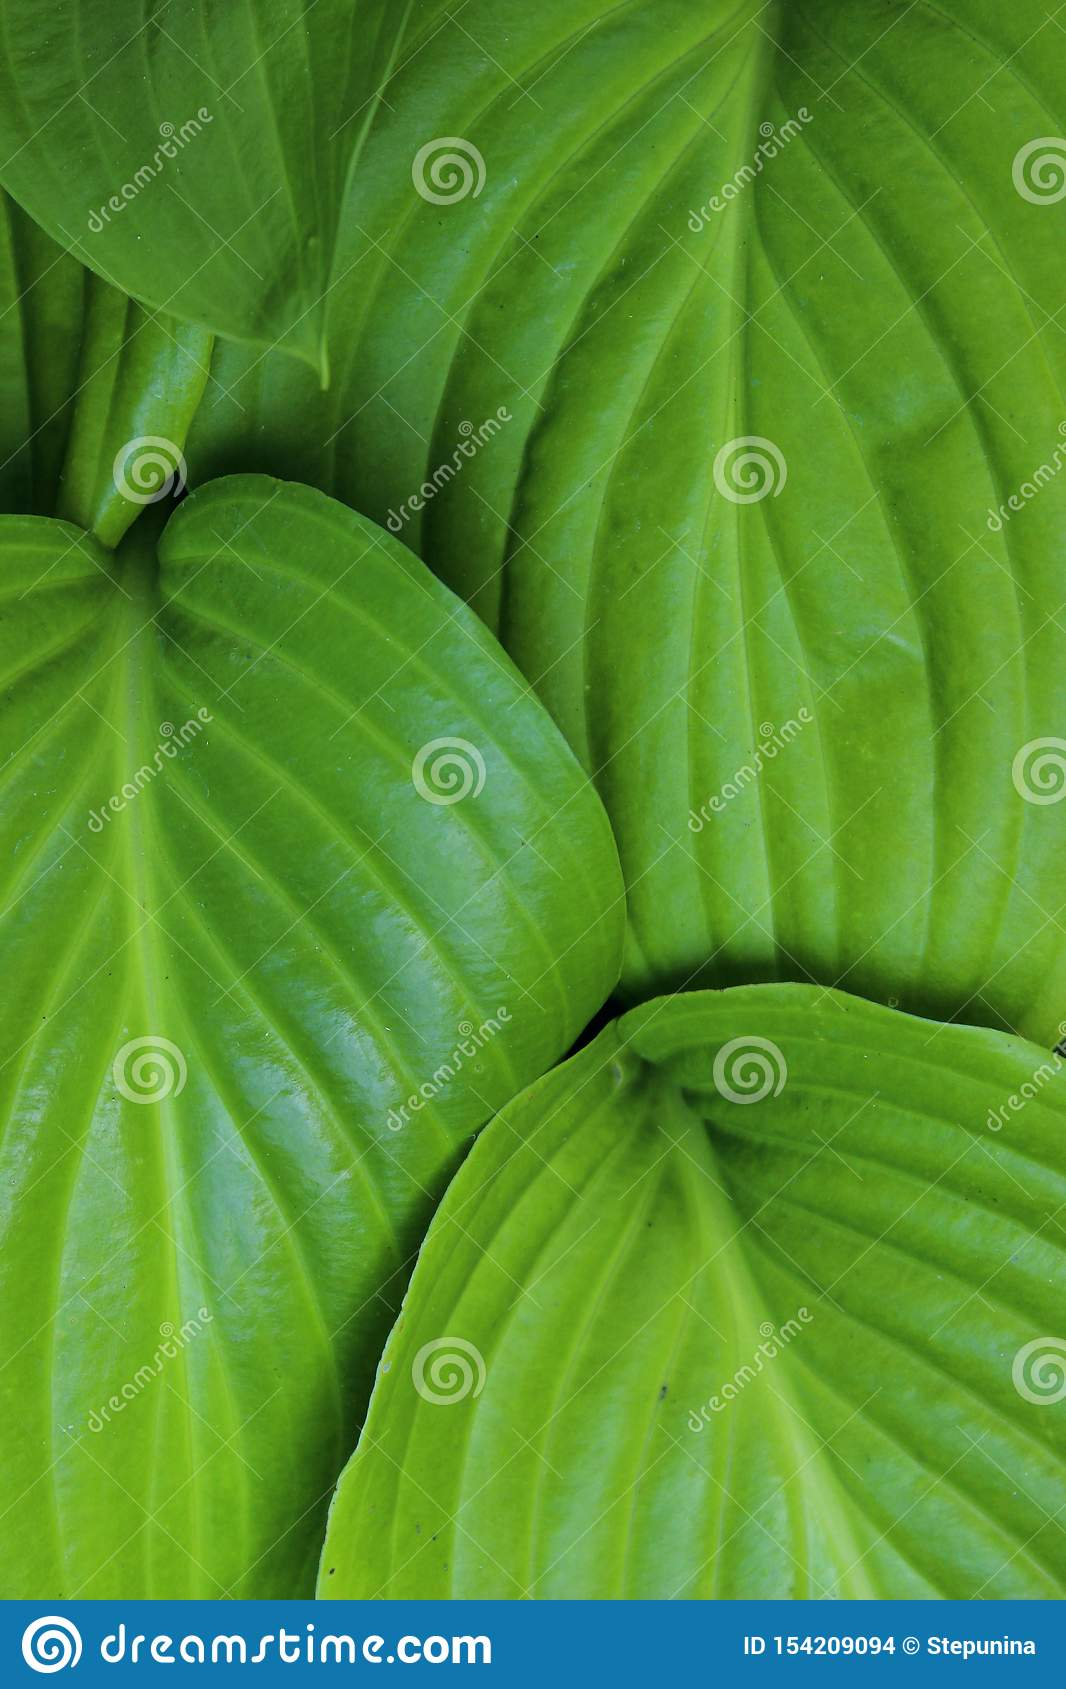 Green Leaves Background, Close Up. Beautiful Nature Background. Green Leaves, vertical shot.